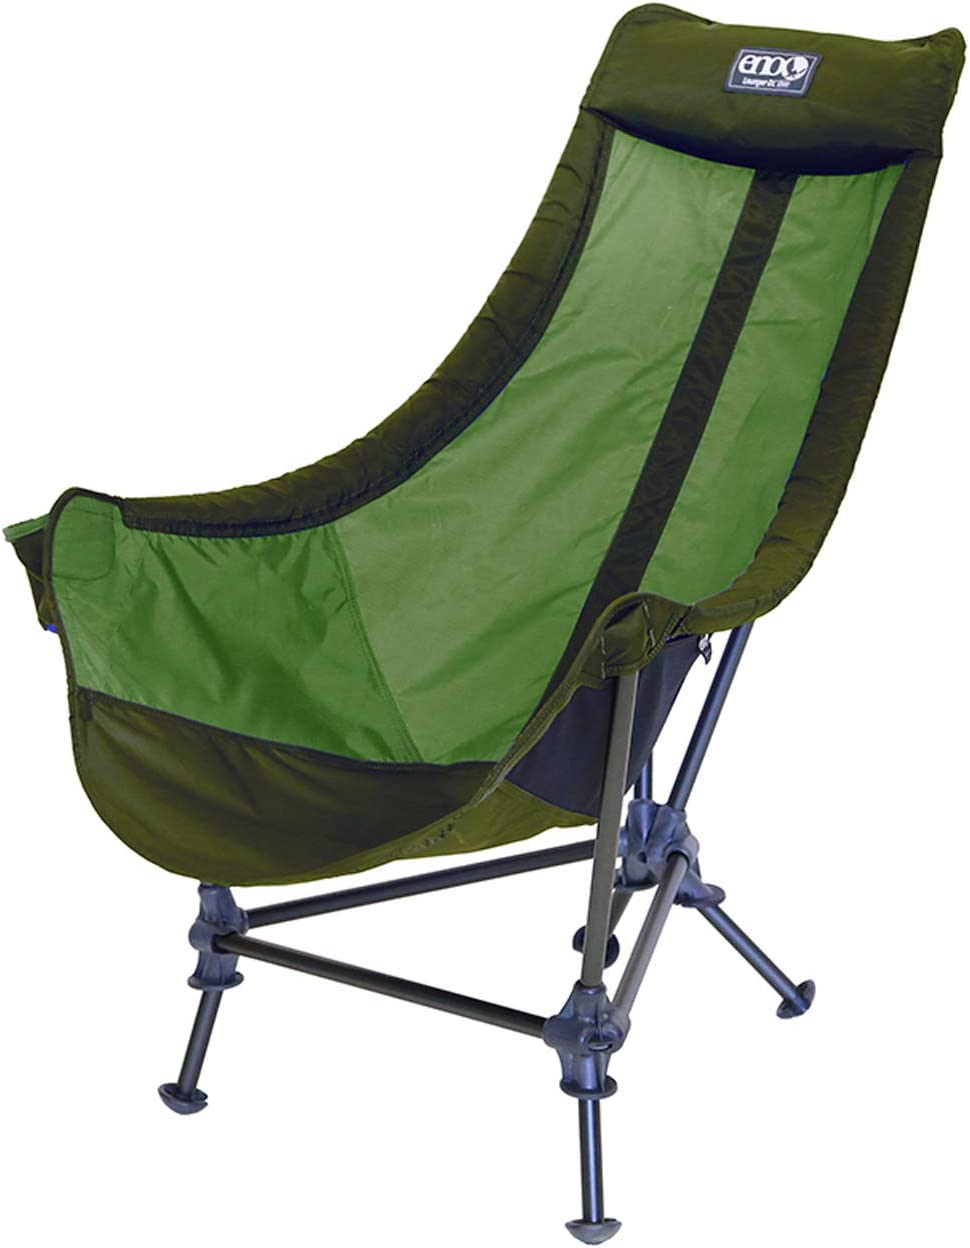 Outdoor Lounge Chair ENO Eagles Nest Outfitters Lounger DL Camping Chair